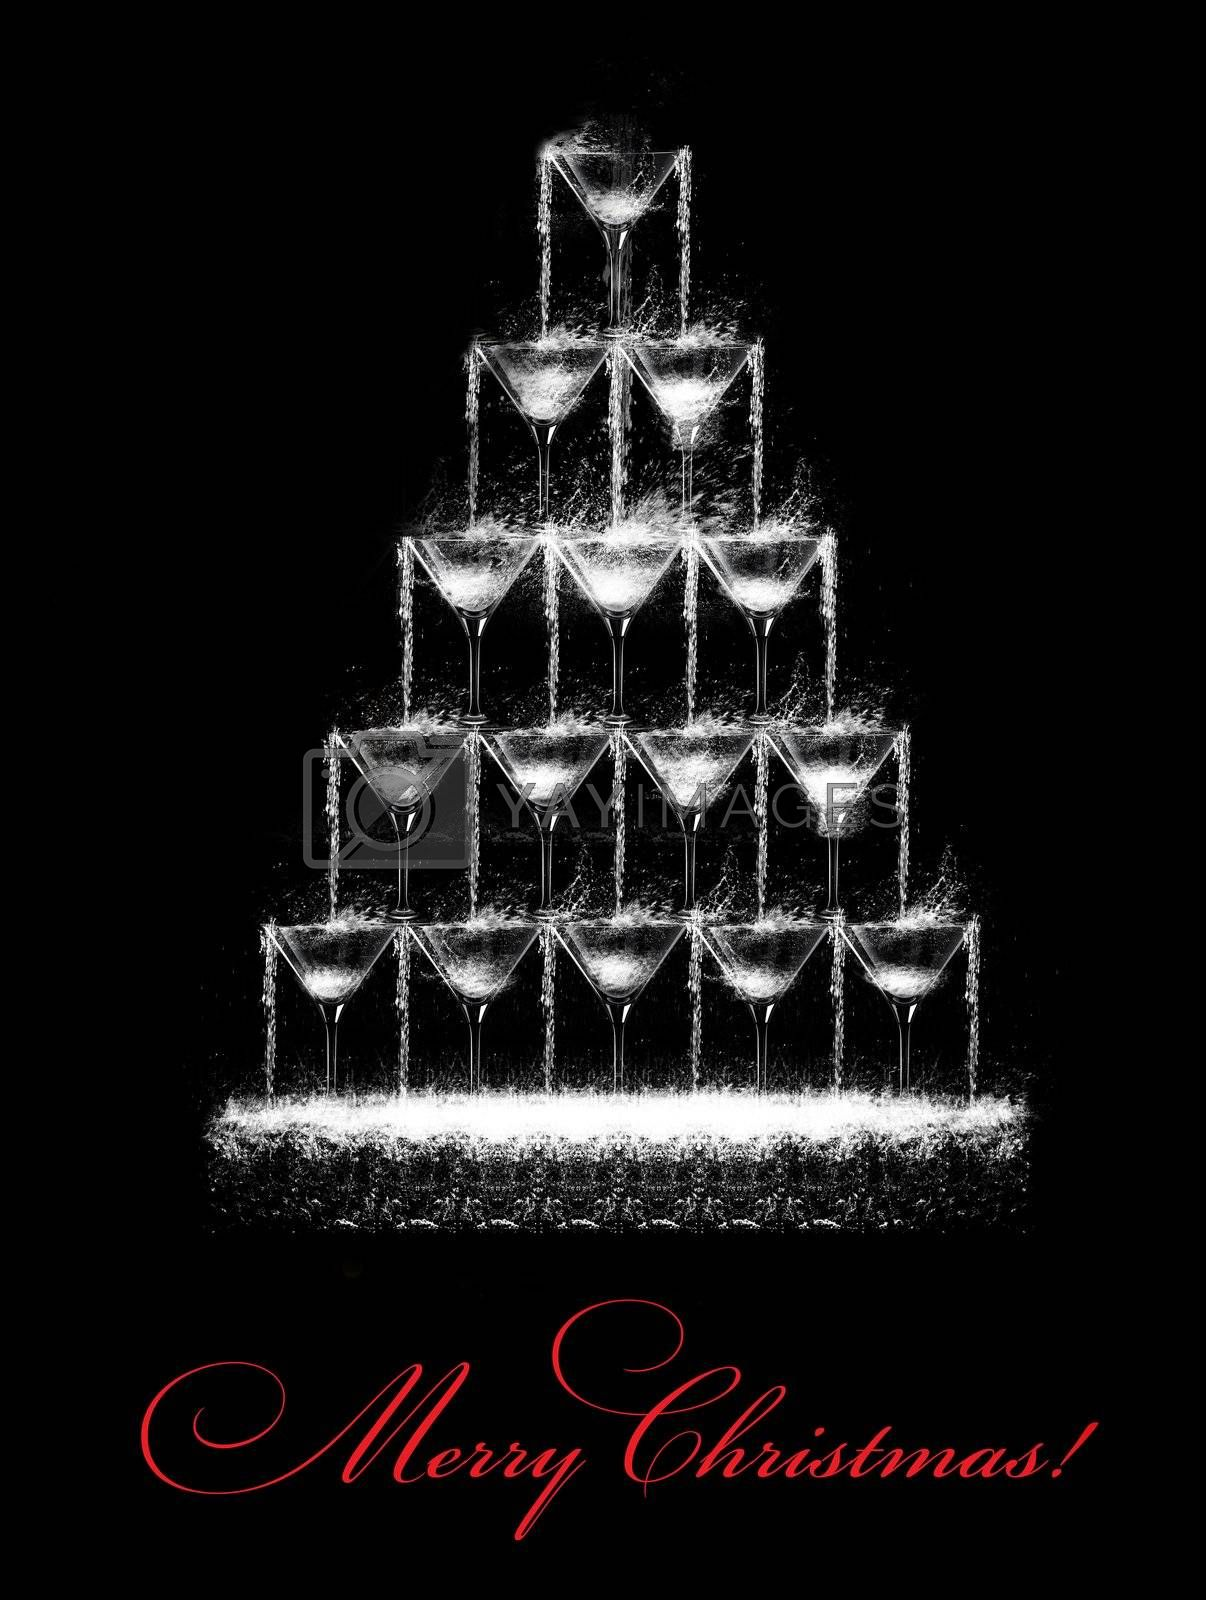 Stylized Christmas tree consisting of wine glasses which pours a drink